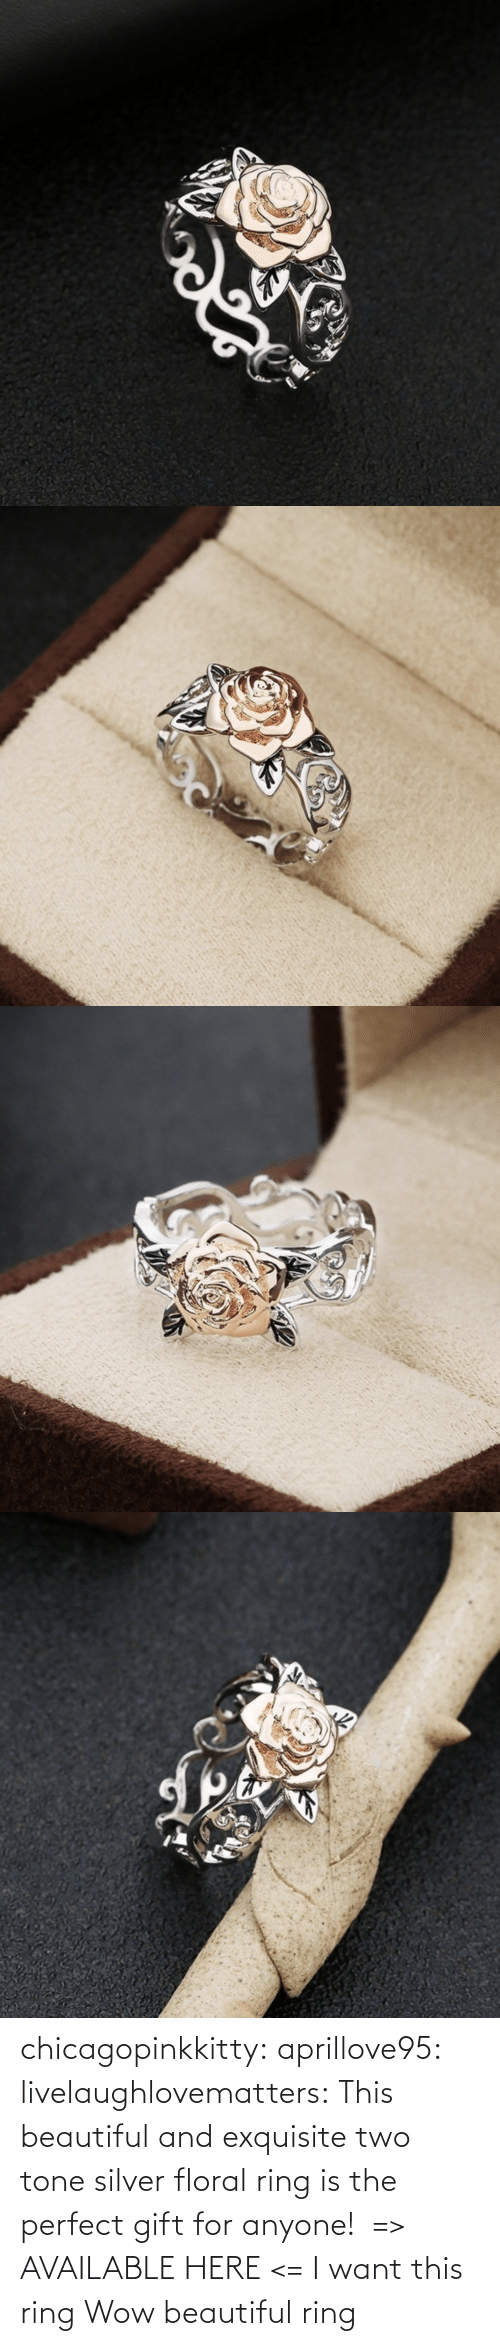 perfect: chicagopinkkitty: aprillove95:  livelaughlovematters:  This beautiful and exquisite two tone silver floral ring is the perfect gift for anyone!  => AVAILABLE HERE <=    I want this ring     Wow beautiful ring